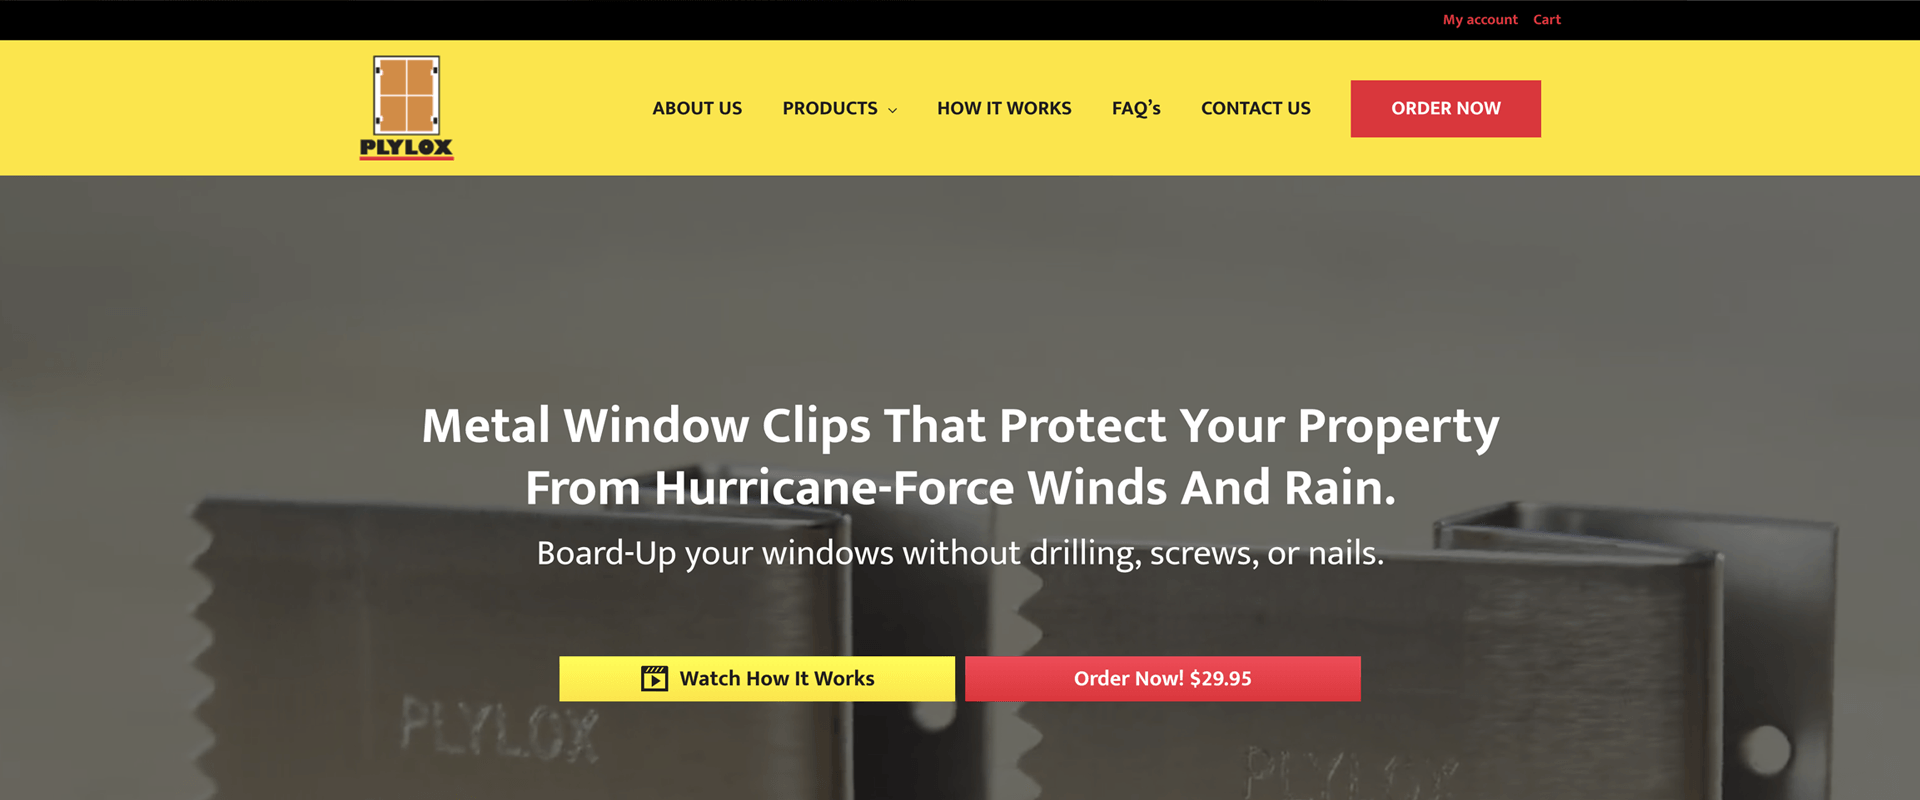 How To Install And Remove Your Plylox Hurricane Window Clips Protecting Your Property In 4 Easy Steps Pr In 2020 Hurricane Window Clips Window Clips Hurricane Windows